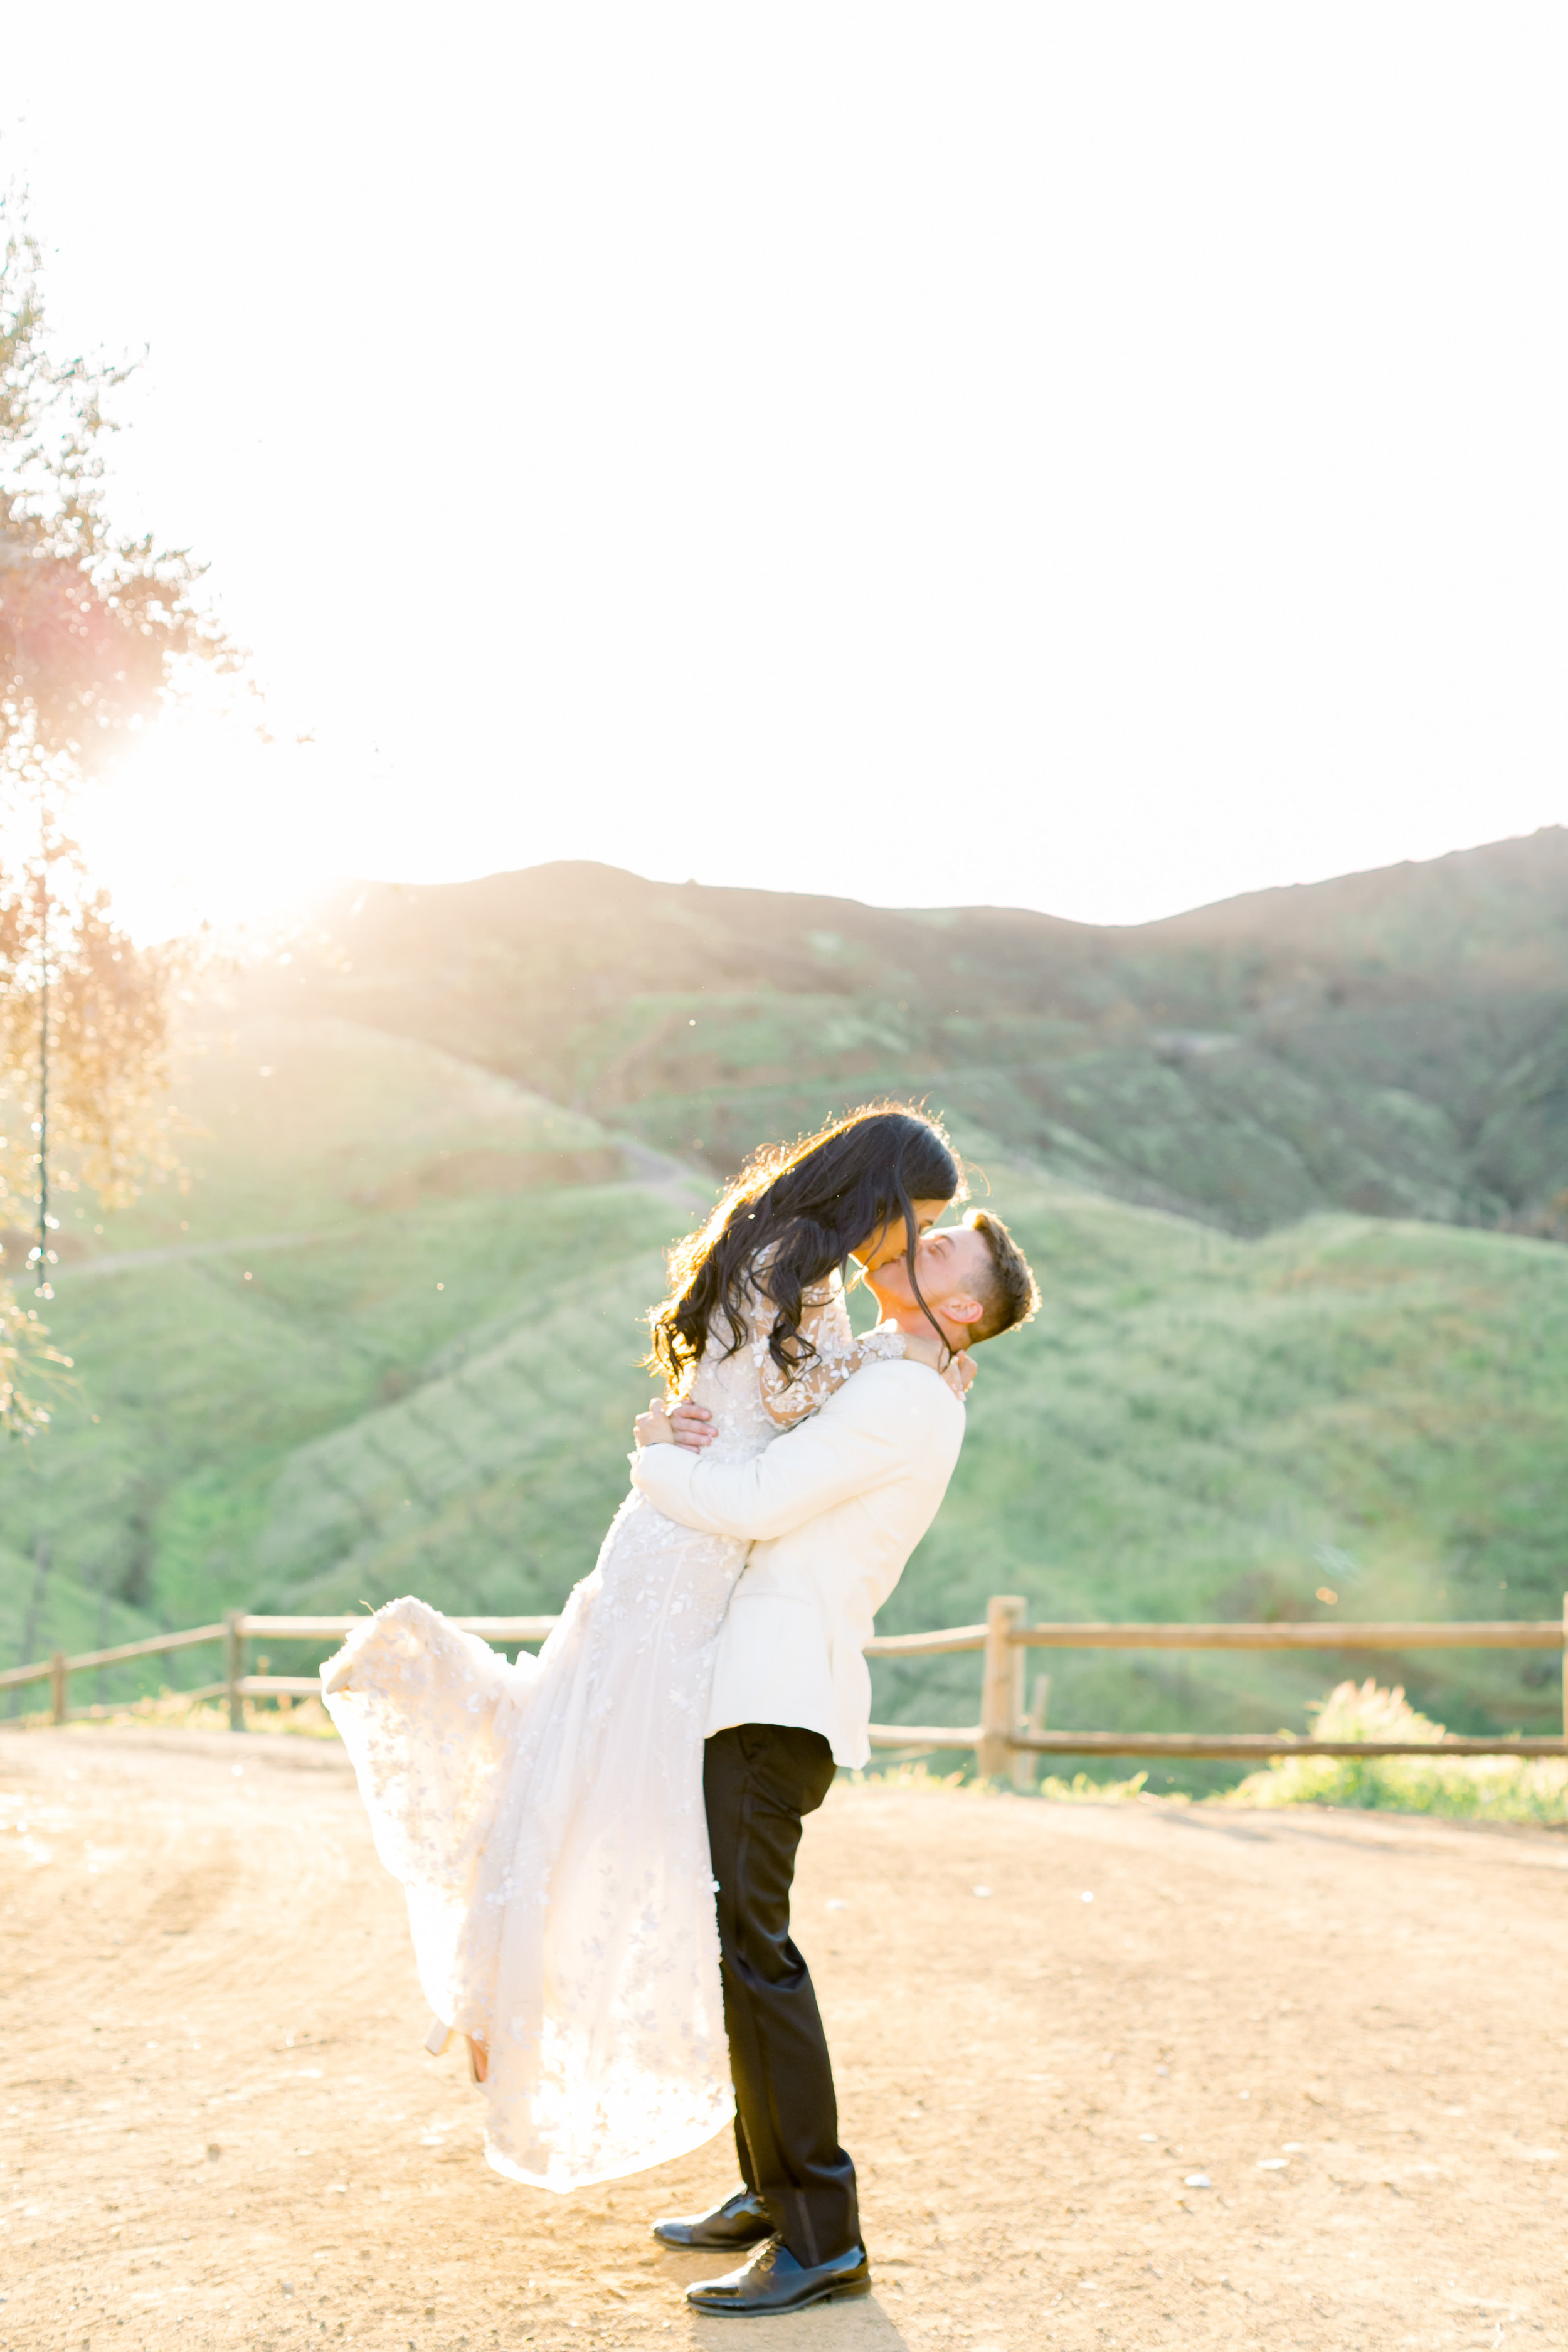 Levi & Amelia's Wedding - Natalie Schutt Photography - Bride + Groom-60.jpg